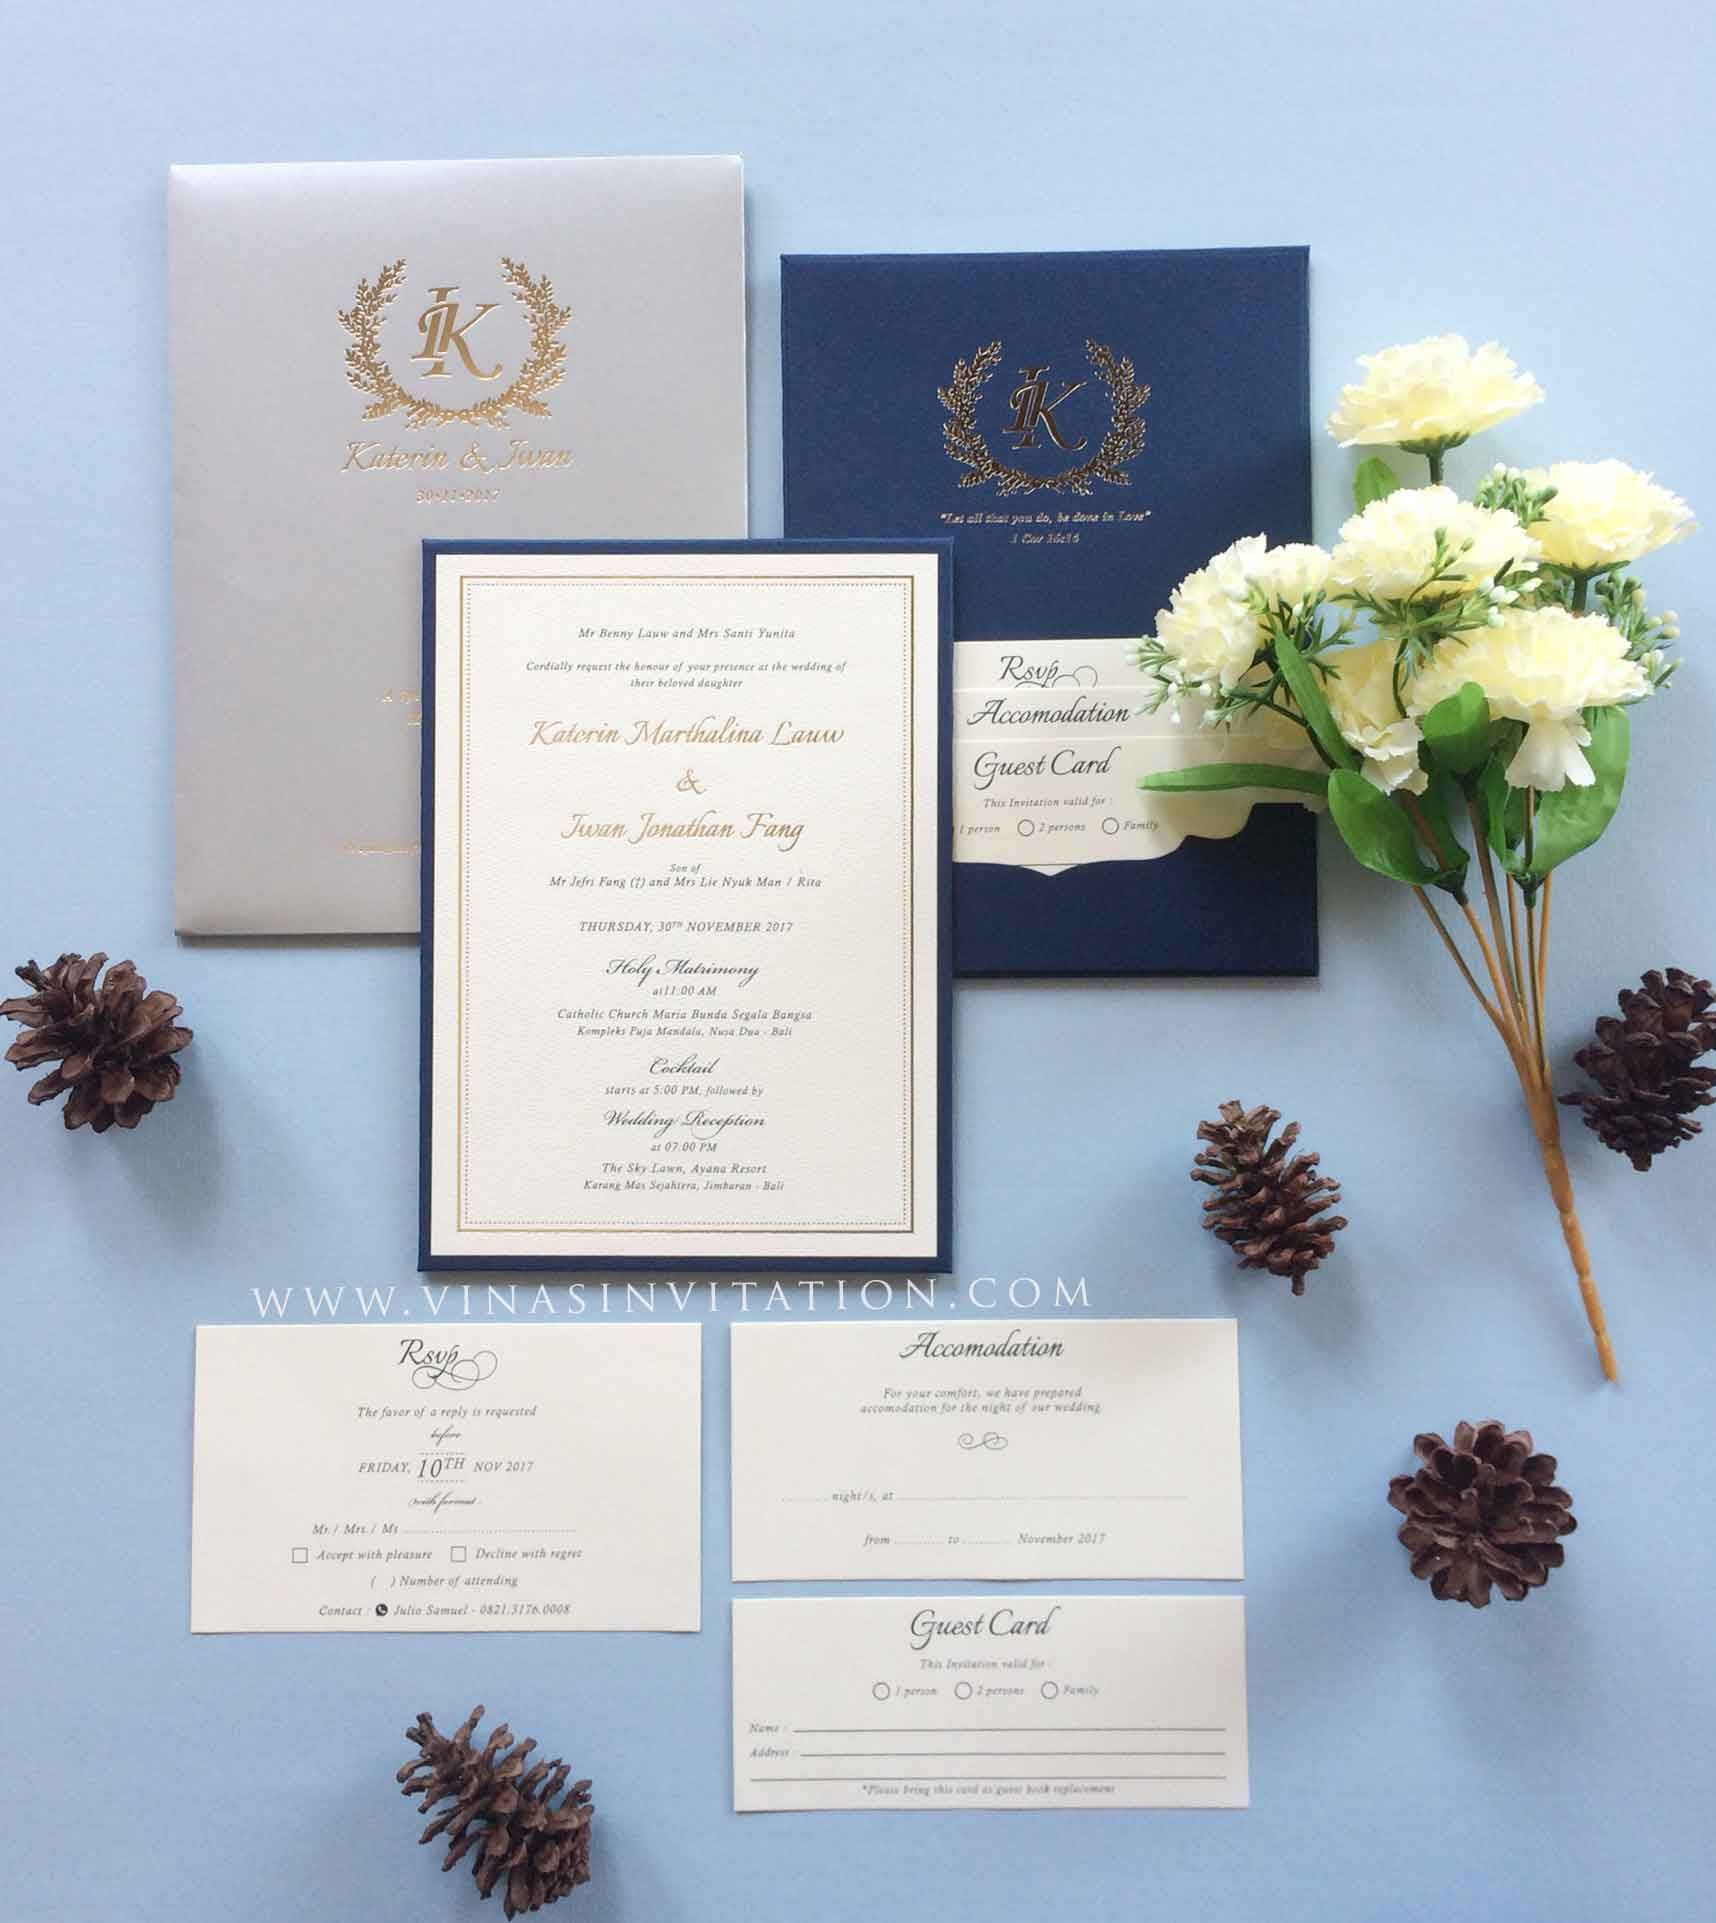 Vinas invitation wedding invitation semarang wedding invitation vinas invitation wedding invitation semarang wedding invitation sydney wedding invitation surabaya custom stopboris Gallery